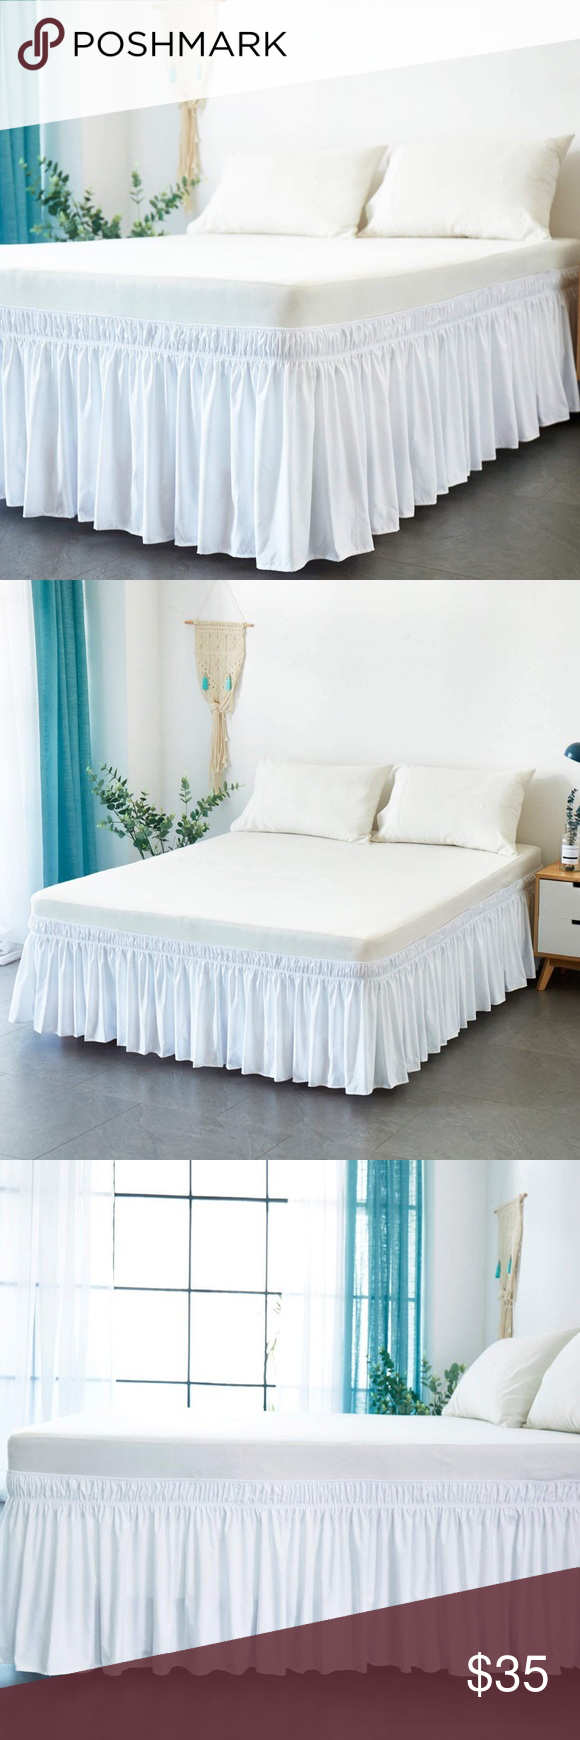 Bed Skirt Snow White 🎀 Bedskirt, Solid bed, Ruffle bedding